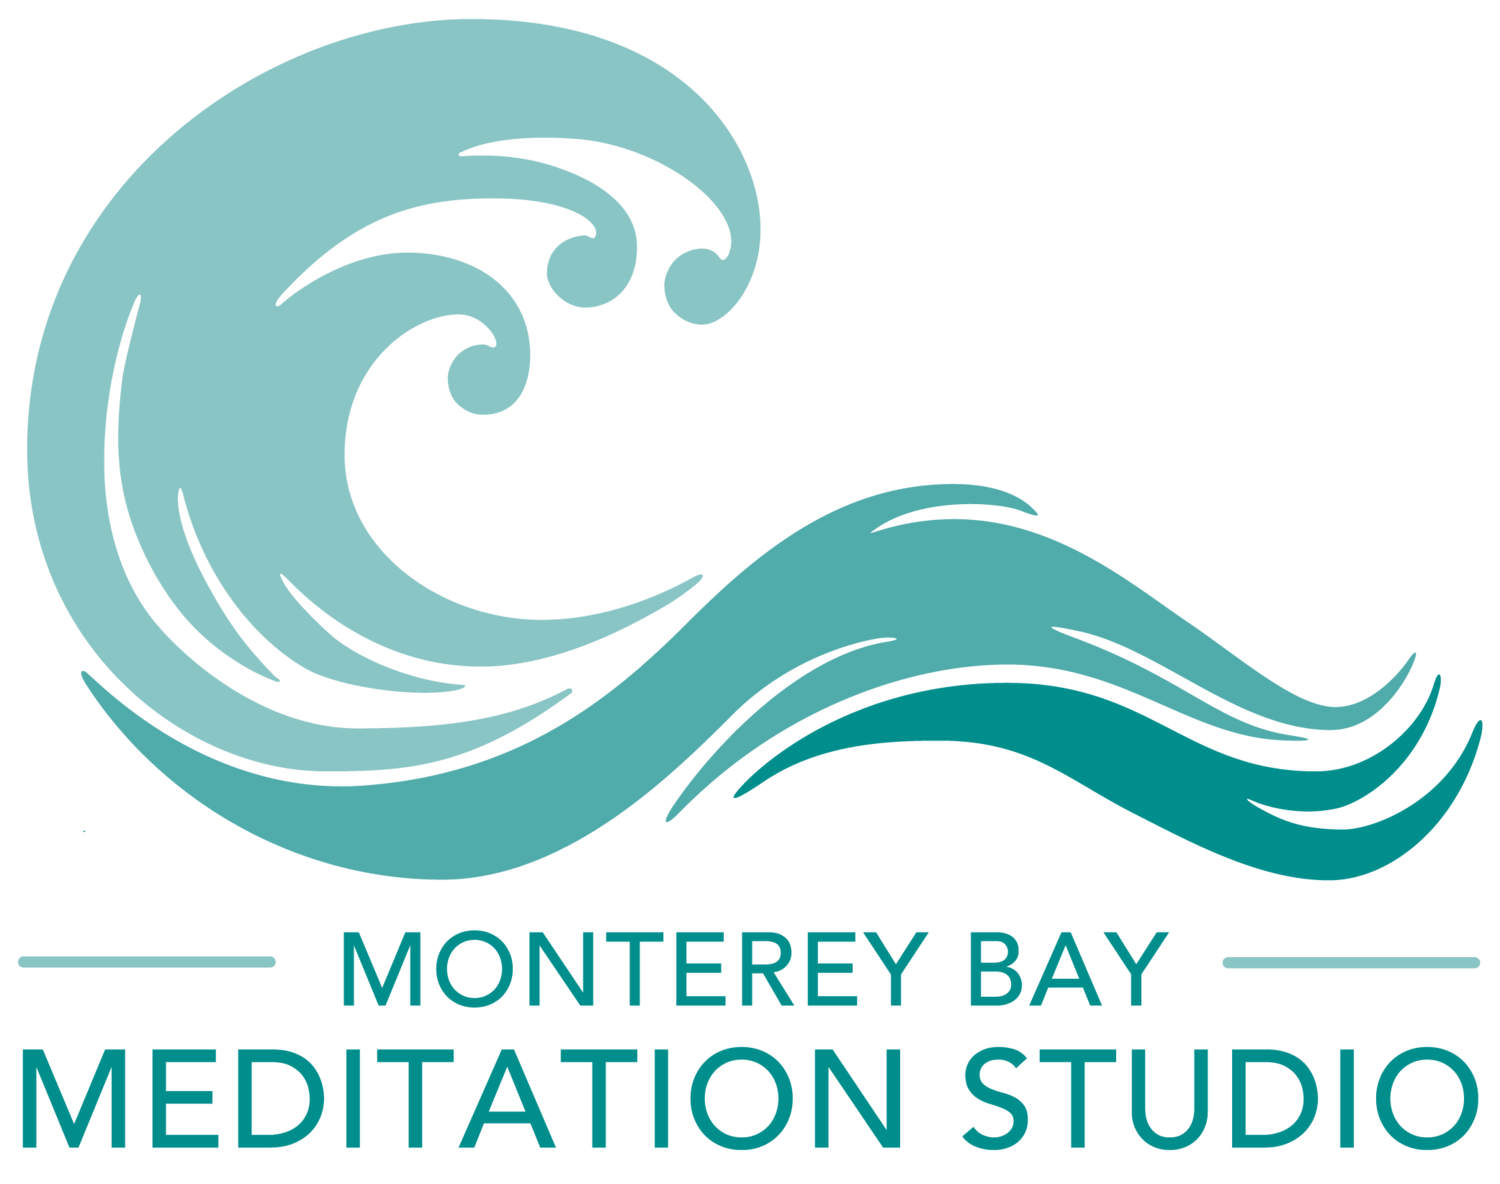 Monterey Bay Meditation Studio | Mindfulness & Compassion